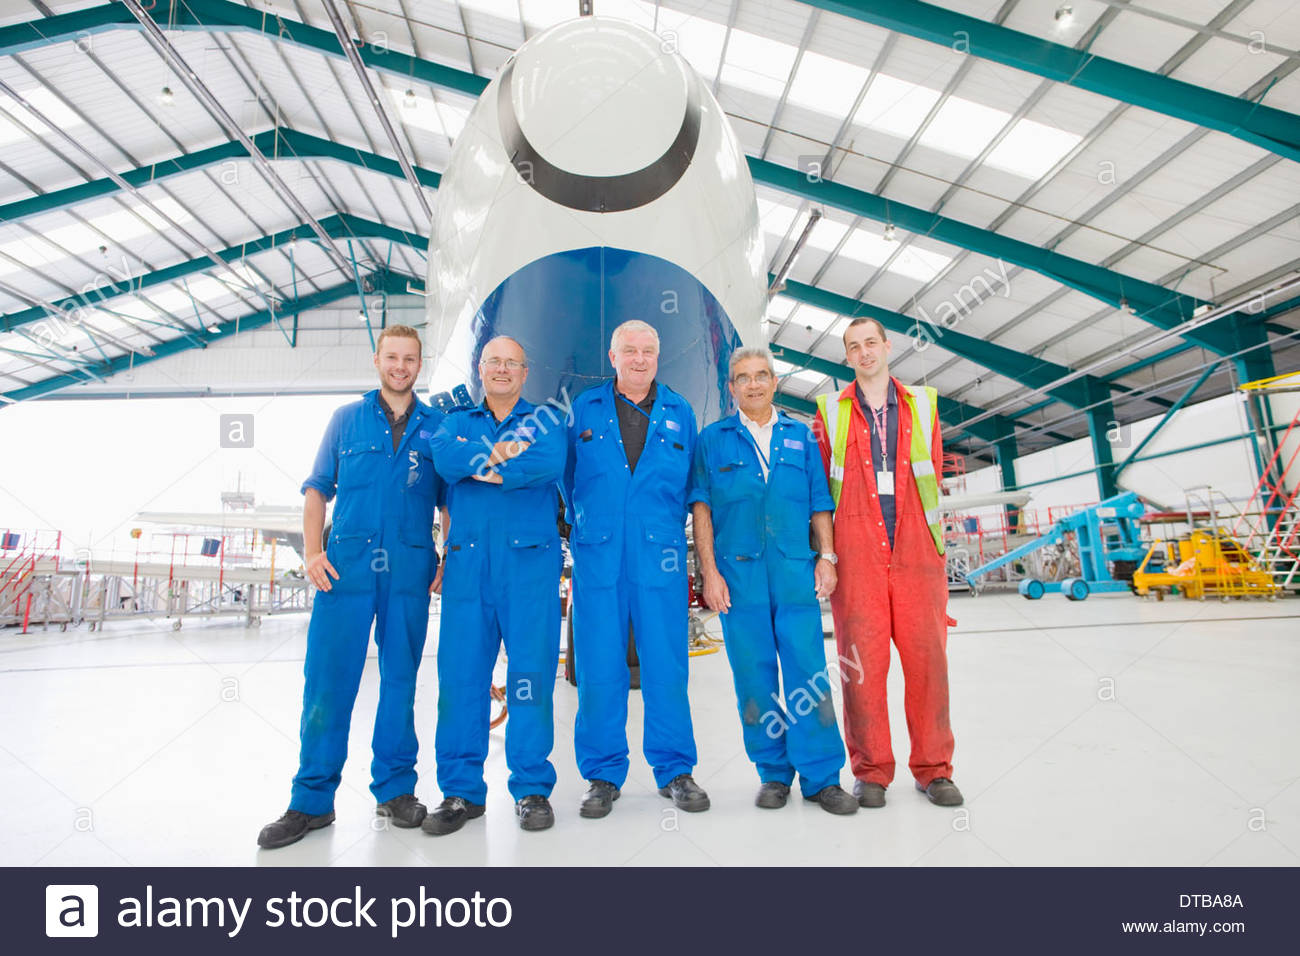 Aircraft Maintenance Team With Plane In Hangar - Stock Image